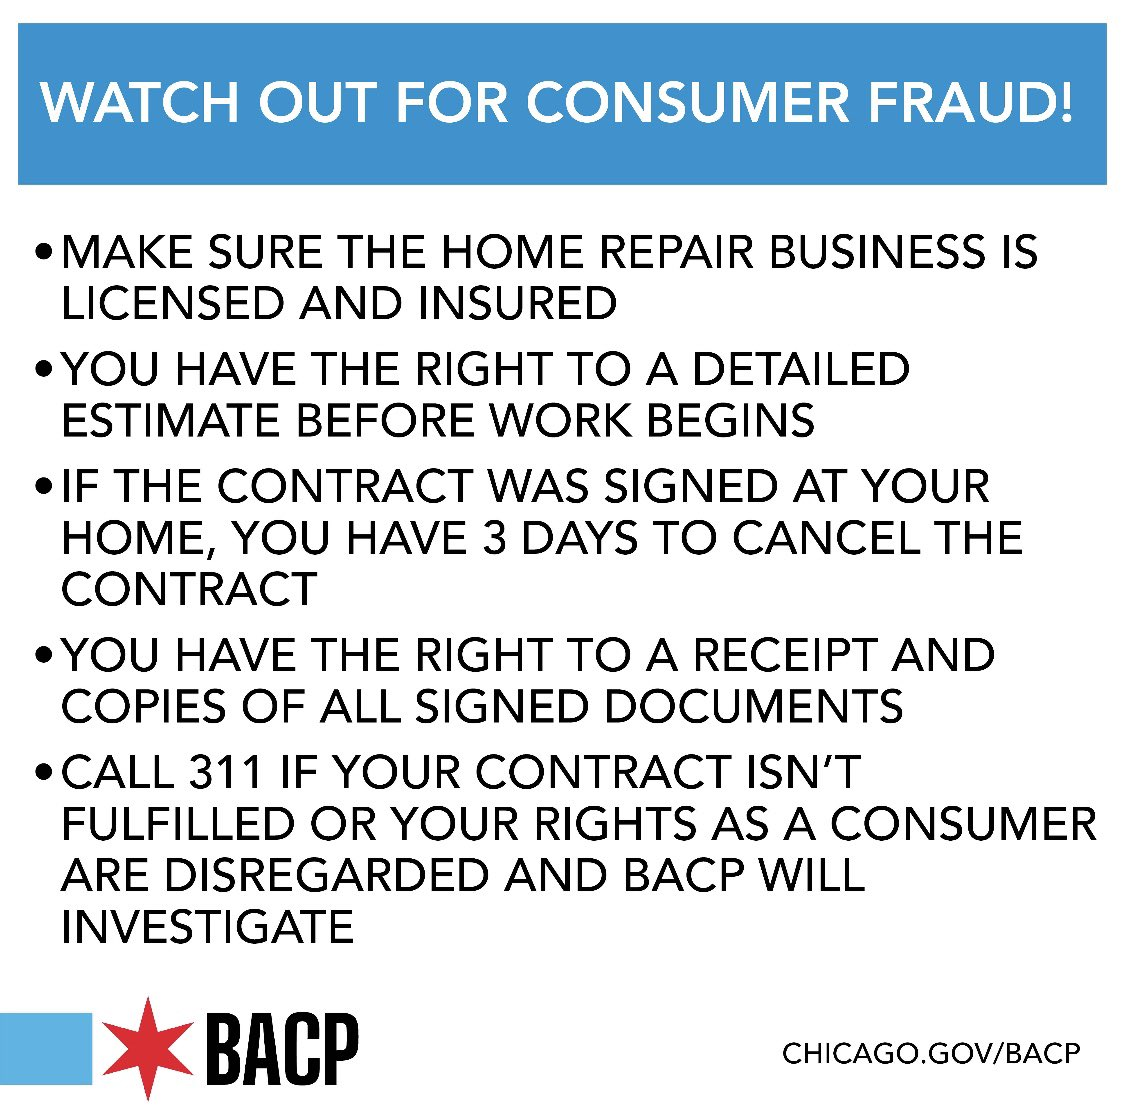 Watch out for fraudulent home repair companies looking to take advantage of people whose homes were damaged in Monday's storms. Check licenses and insurance, read contracts closely, get receipts and, most importantly, call @CHI311 to report fraud! https://t.co/kFzTRzQml9